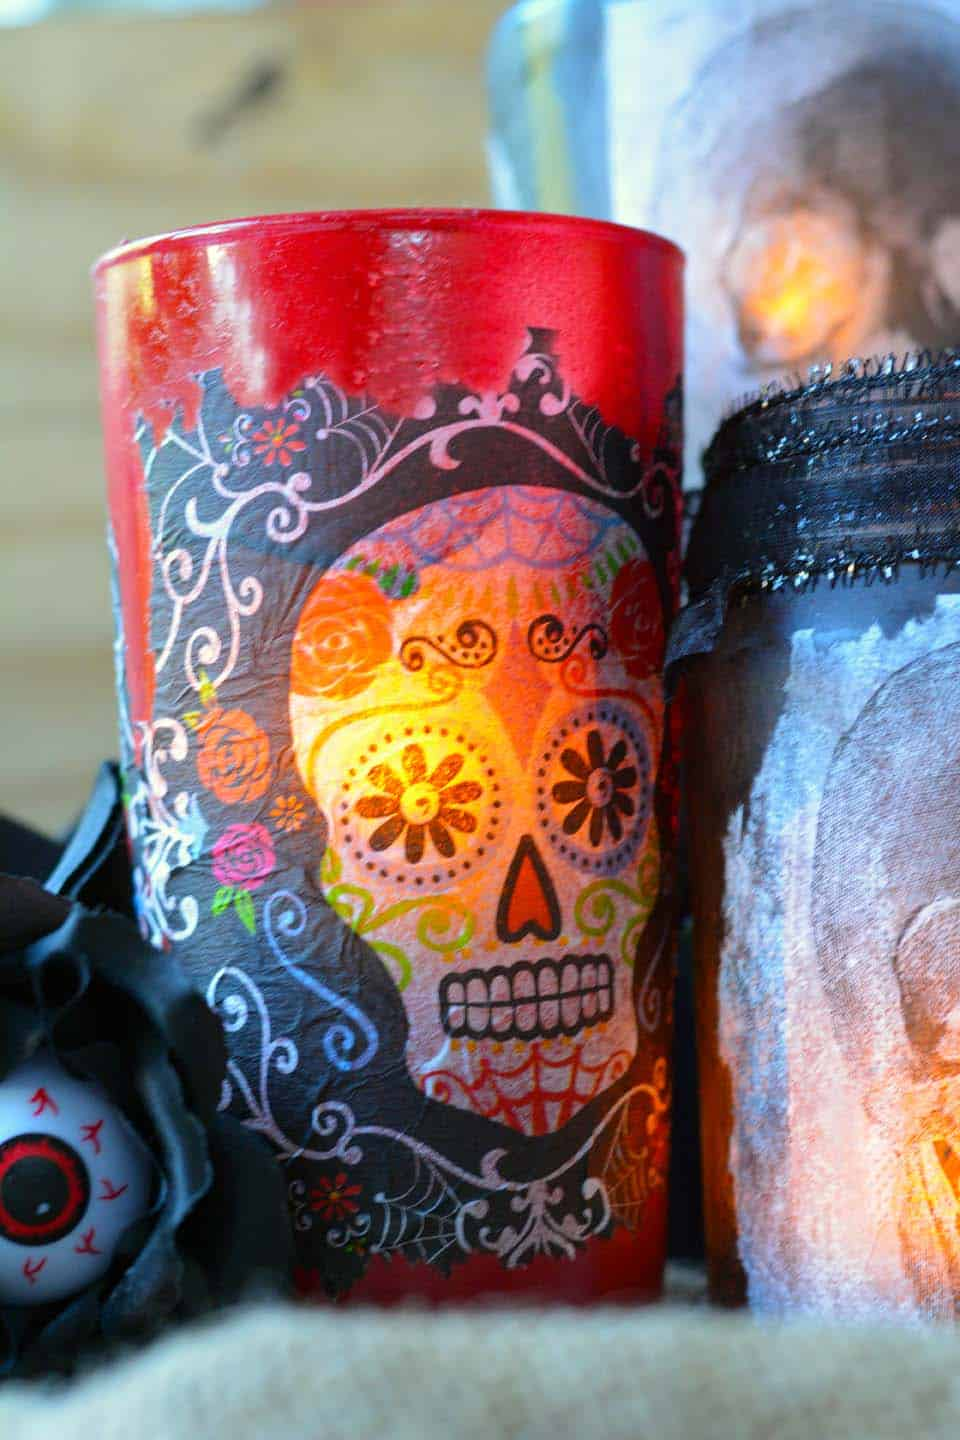 Do you love Day of the Dead crafts? Use napkins to create these unique decorative luminaries! So fun for Halloween and beyond.